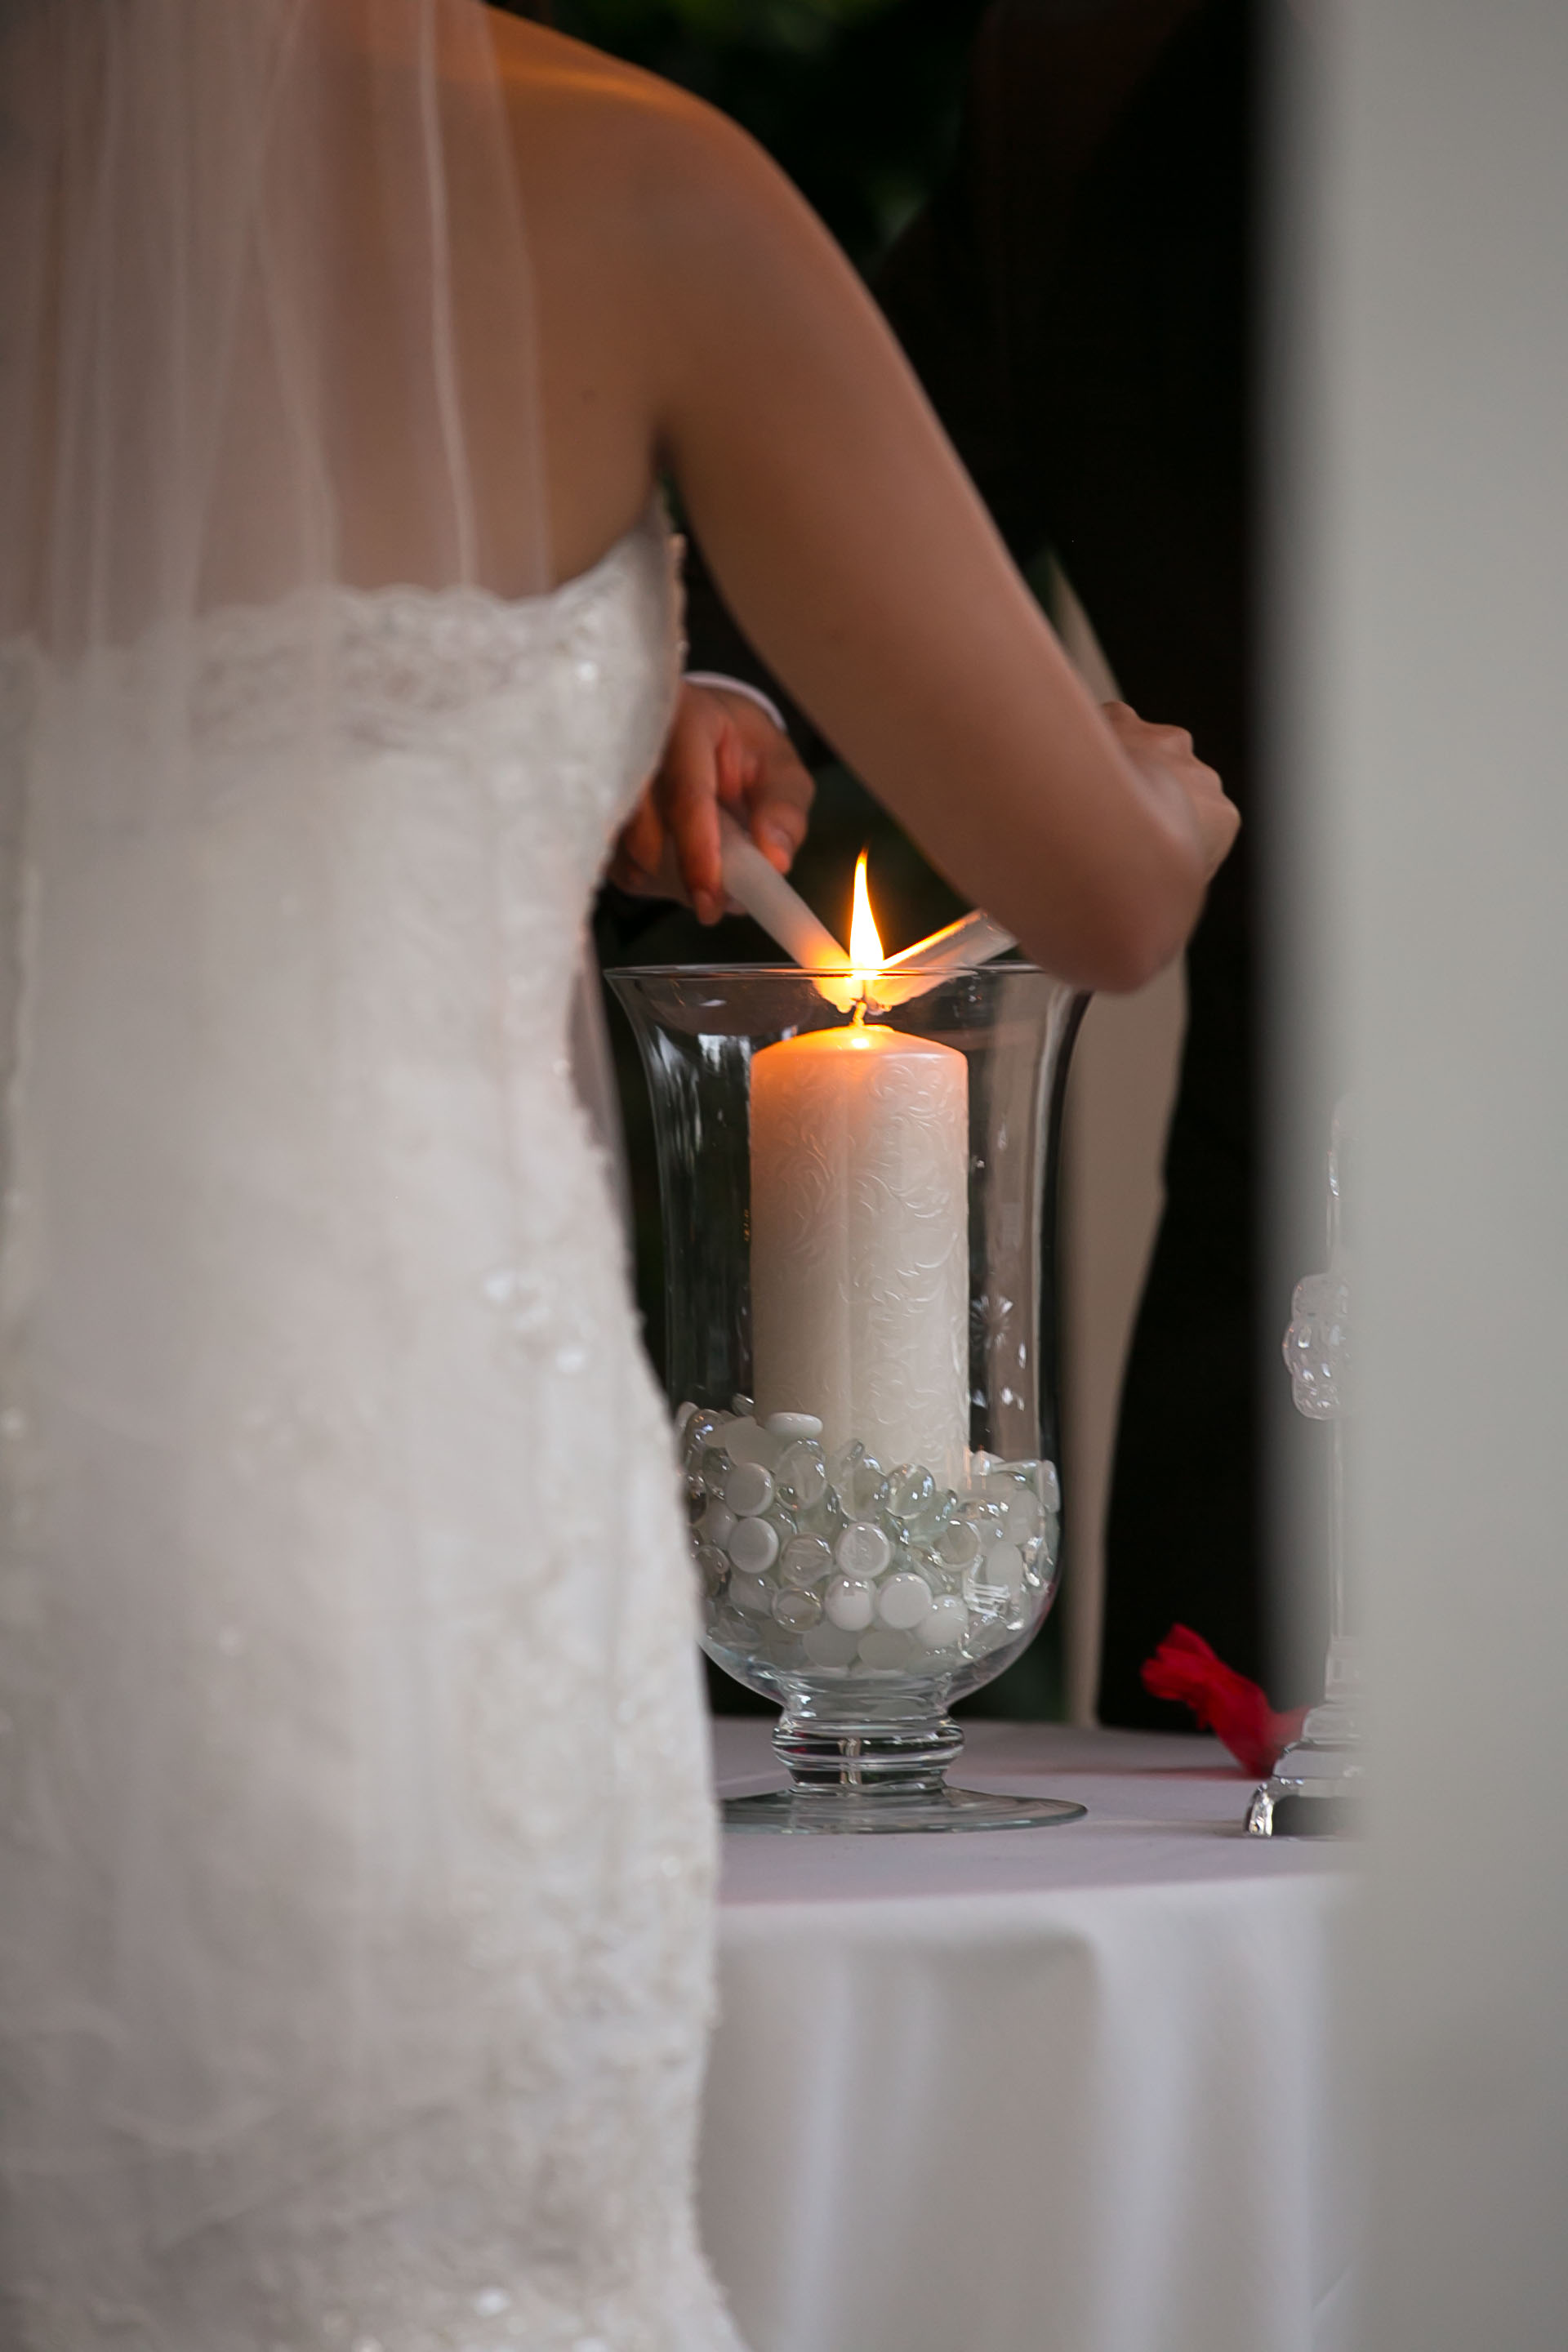 SPORTSMENS LODGE WEDDING LOS ANGELES WEDDING PHOTOGRAPHER CHRIS HOLT PHOTOGRAPHY_030.jpg